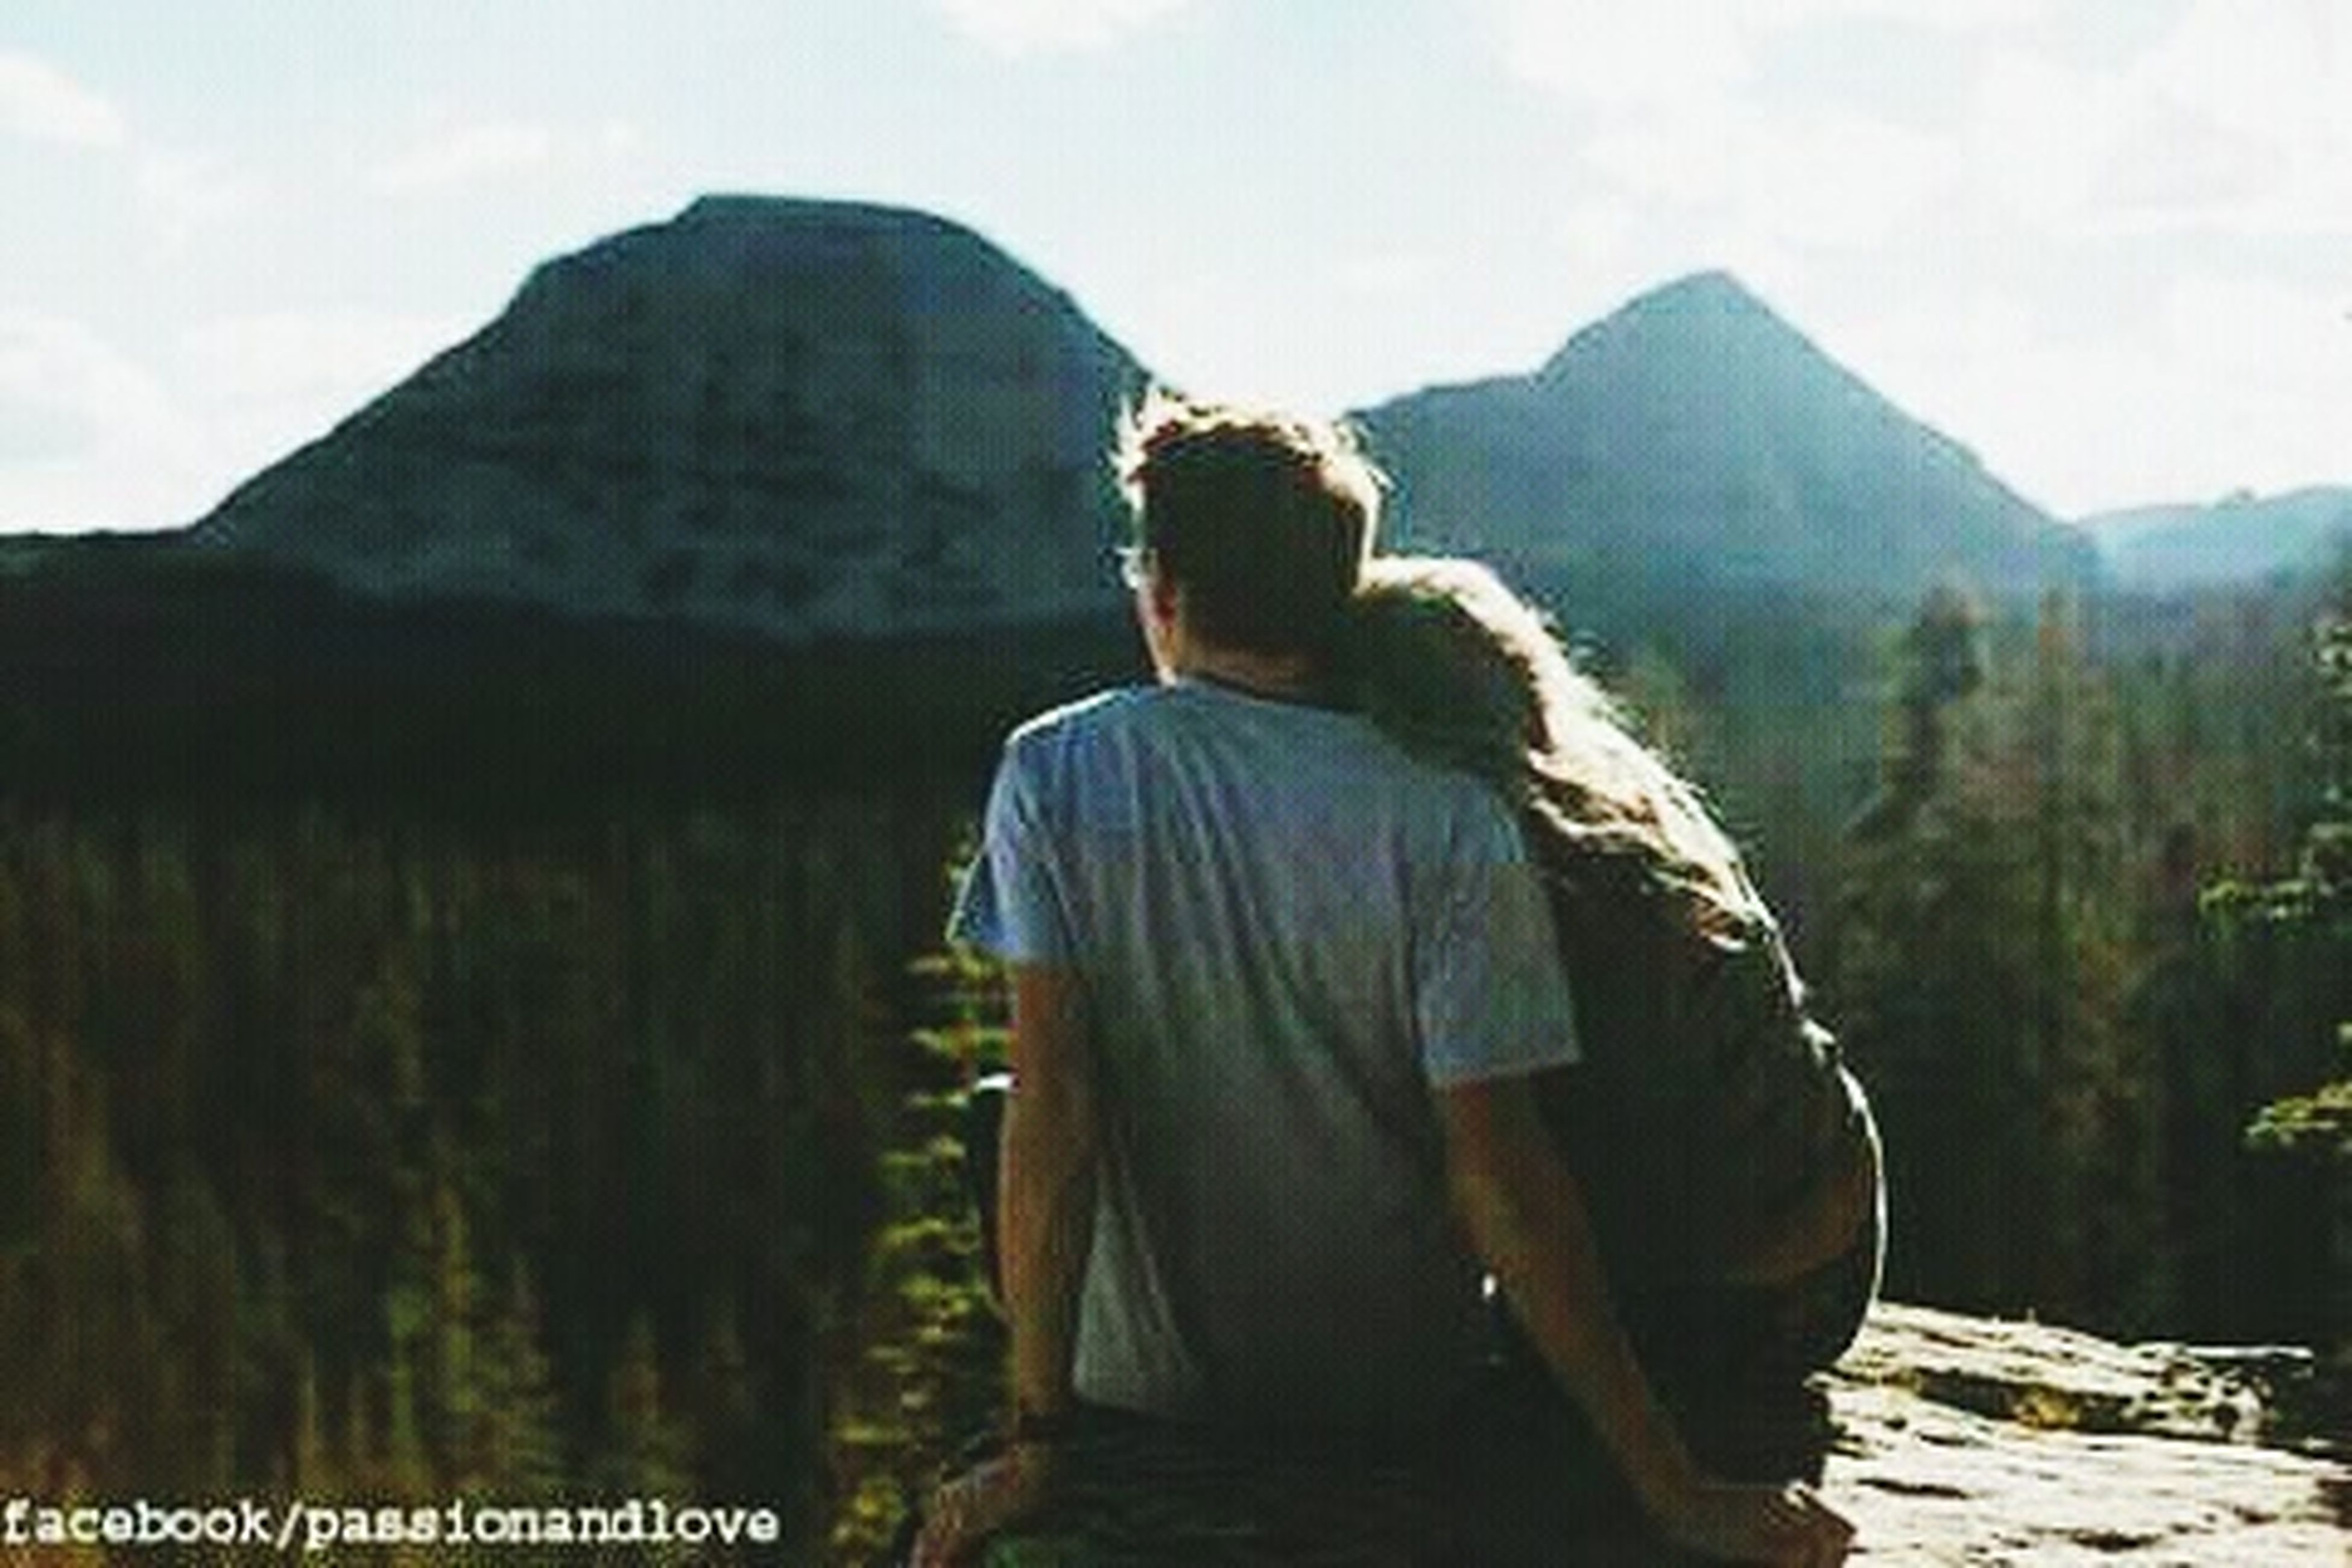 mountain, rear view, two people, mountain range, leisure activity, real people, togetherness, lifestyles, beauty in nature, nature, landscape, adults only, scenics, outdoors, sky, vacations, cloud - sky, people, day, adult, young adult